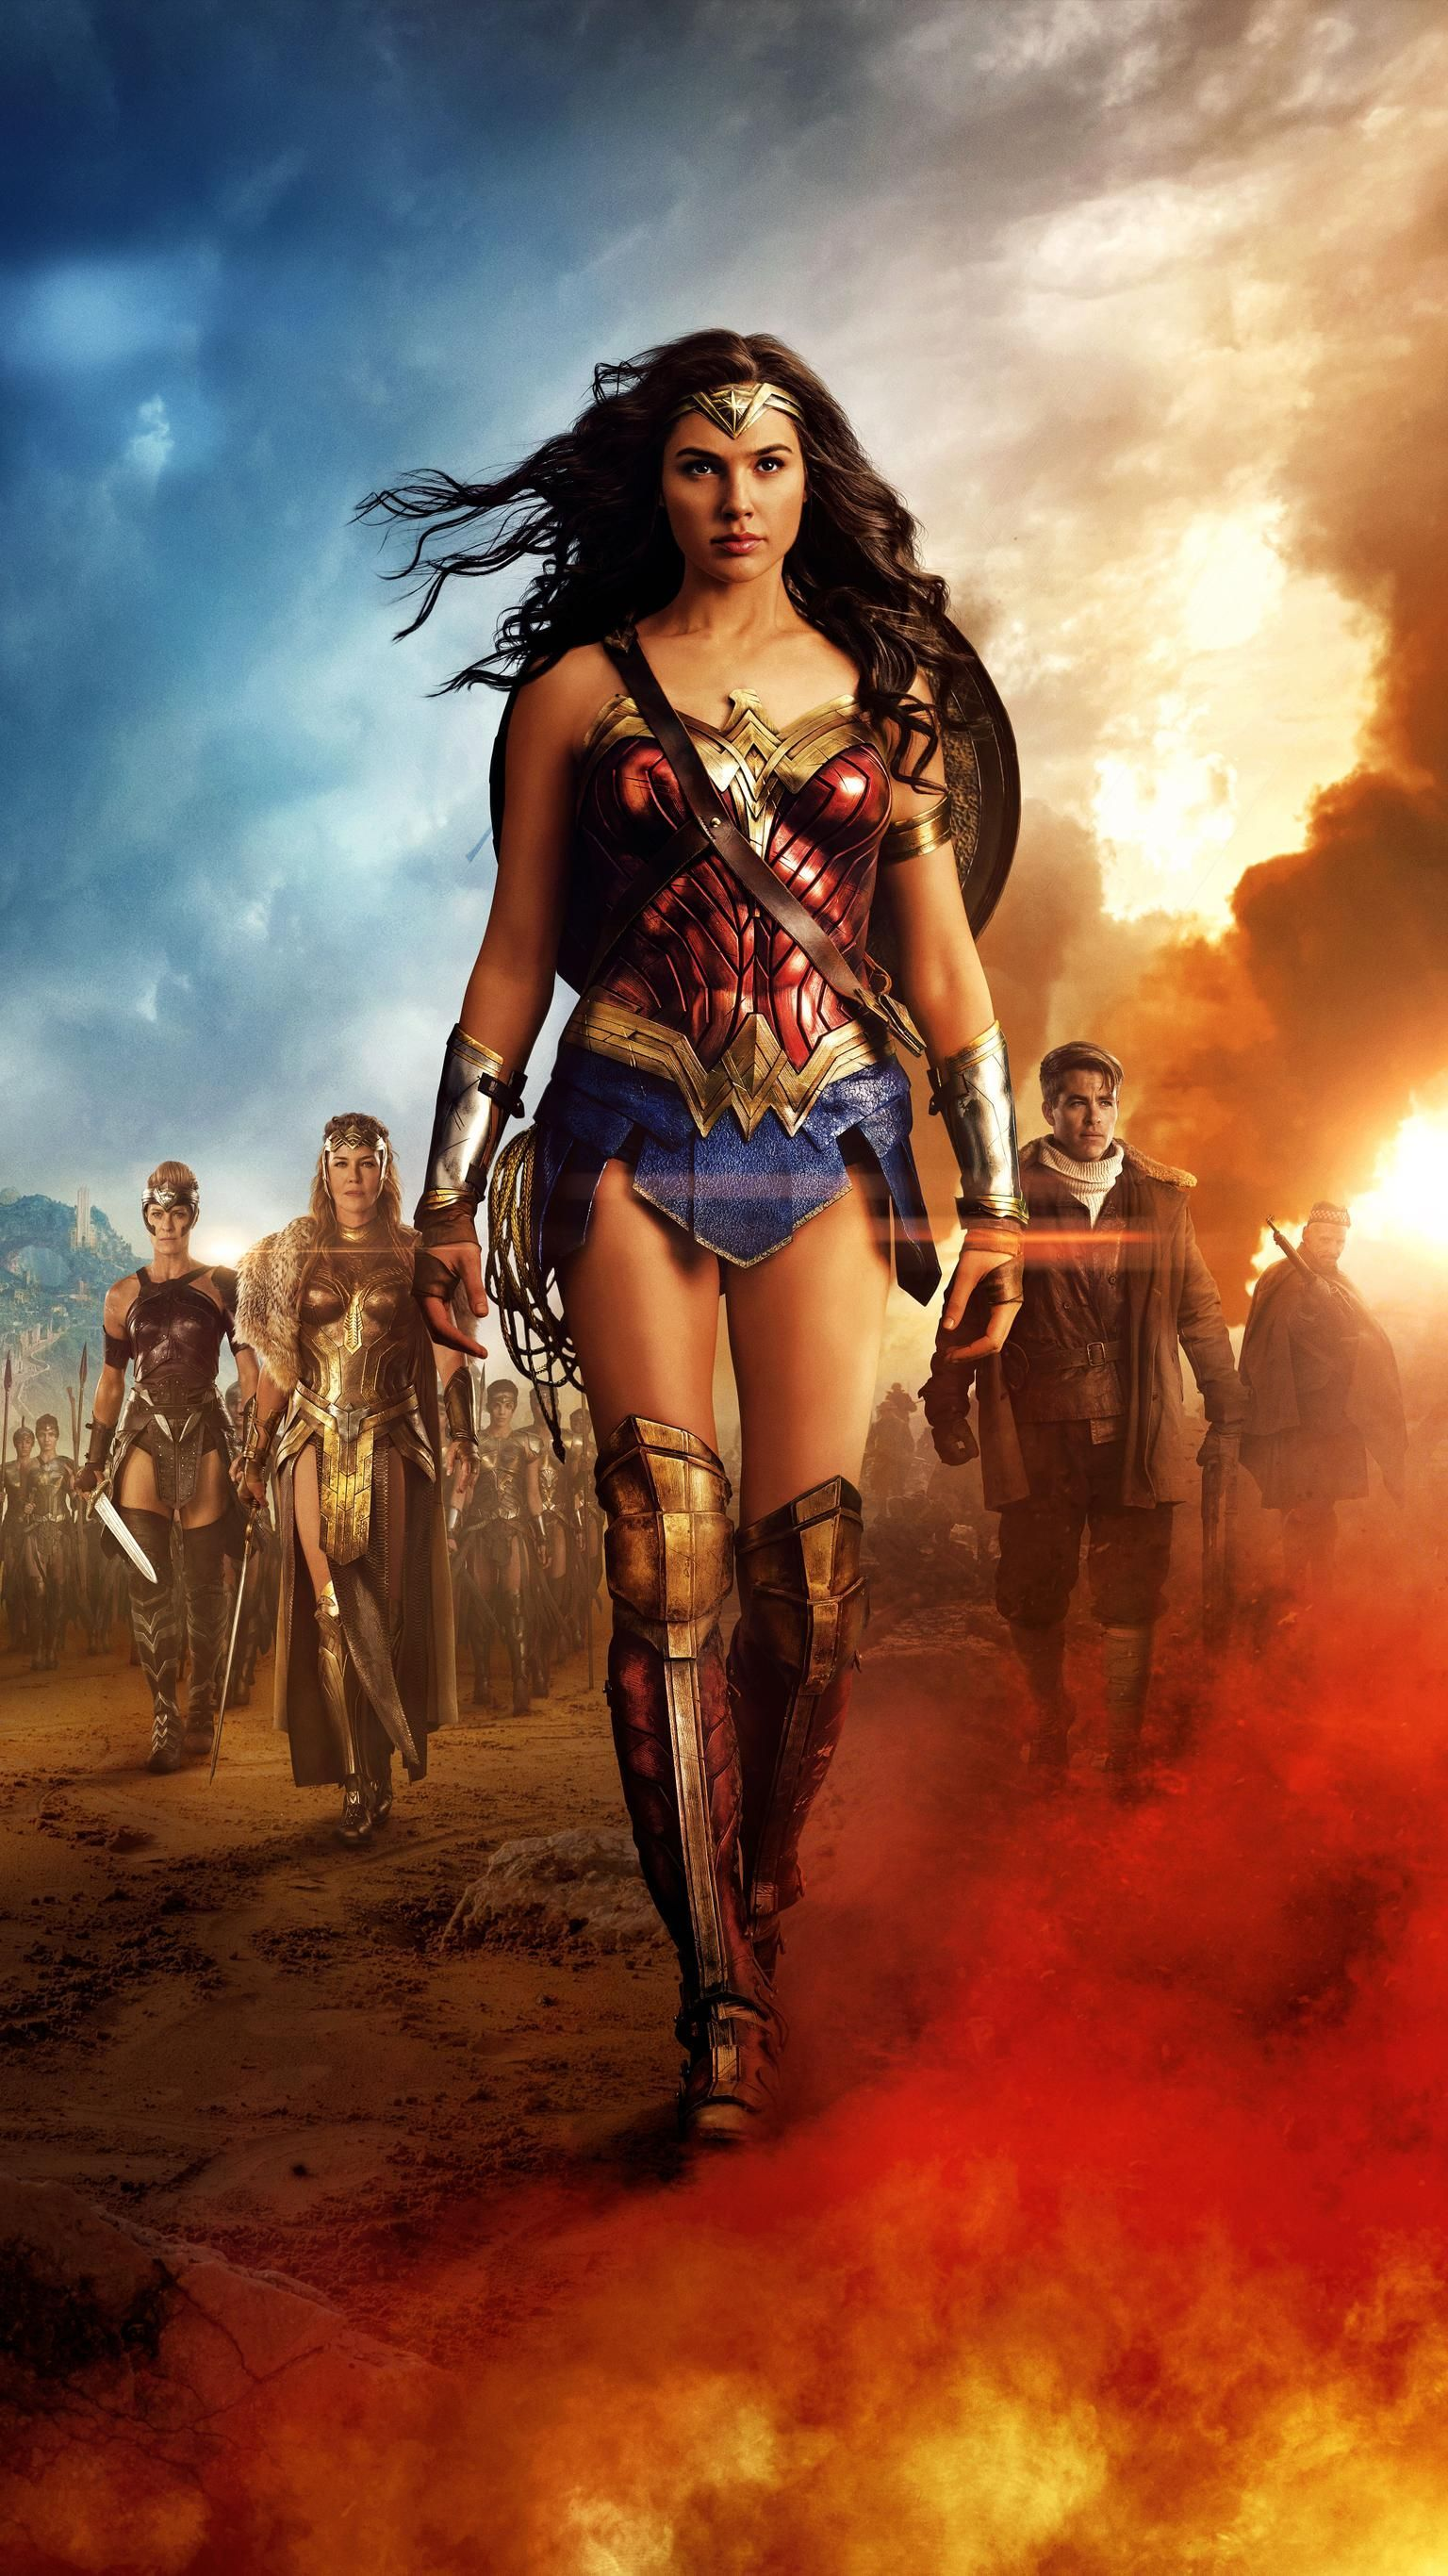 Free Download Wonder Women Phone Wallpapers Top Wonder Women Phone